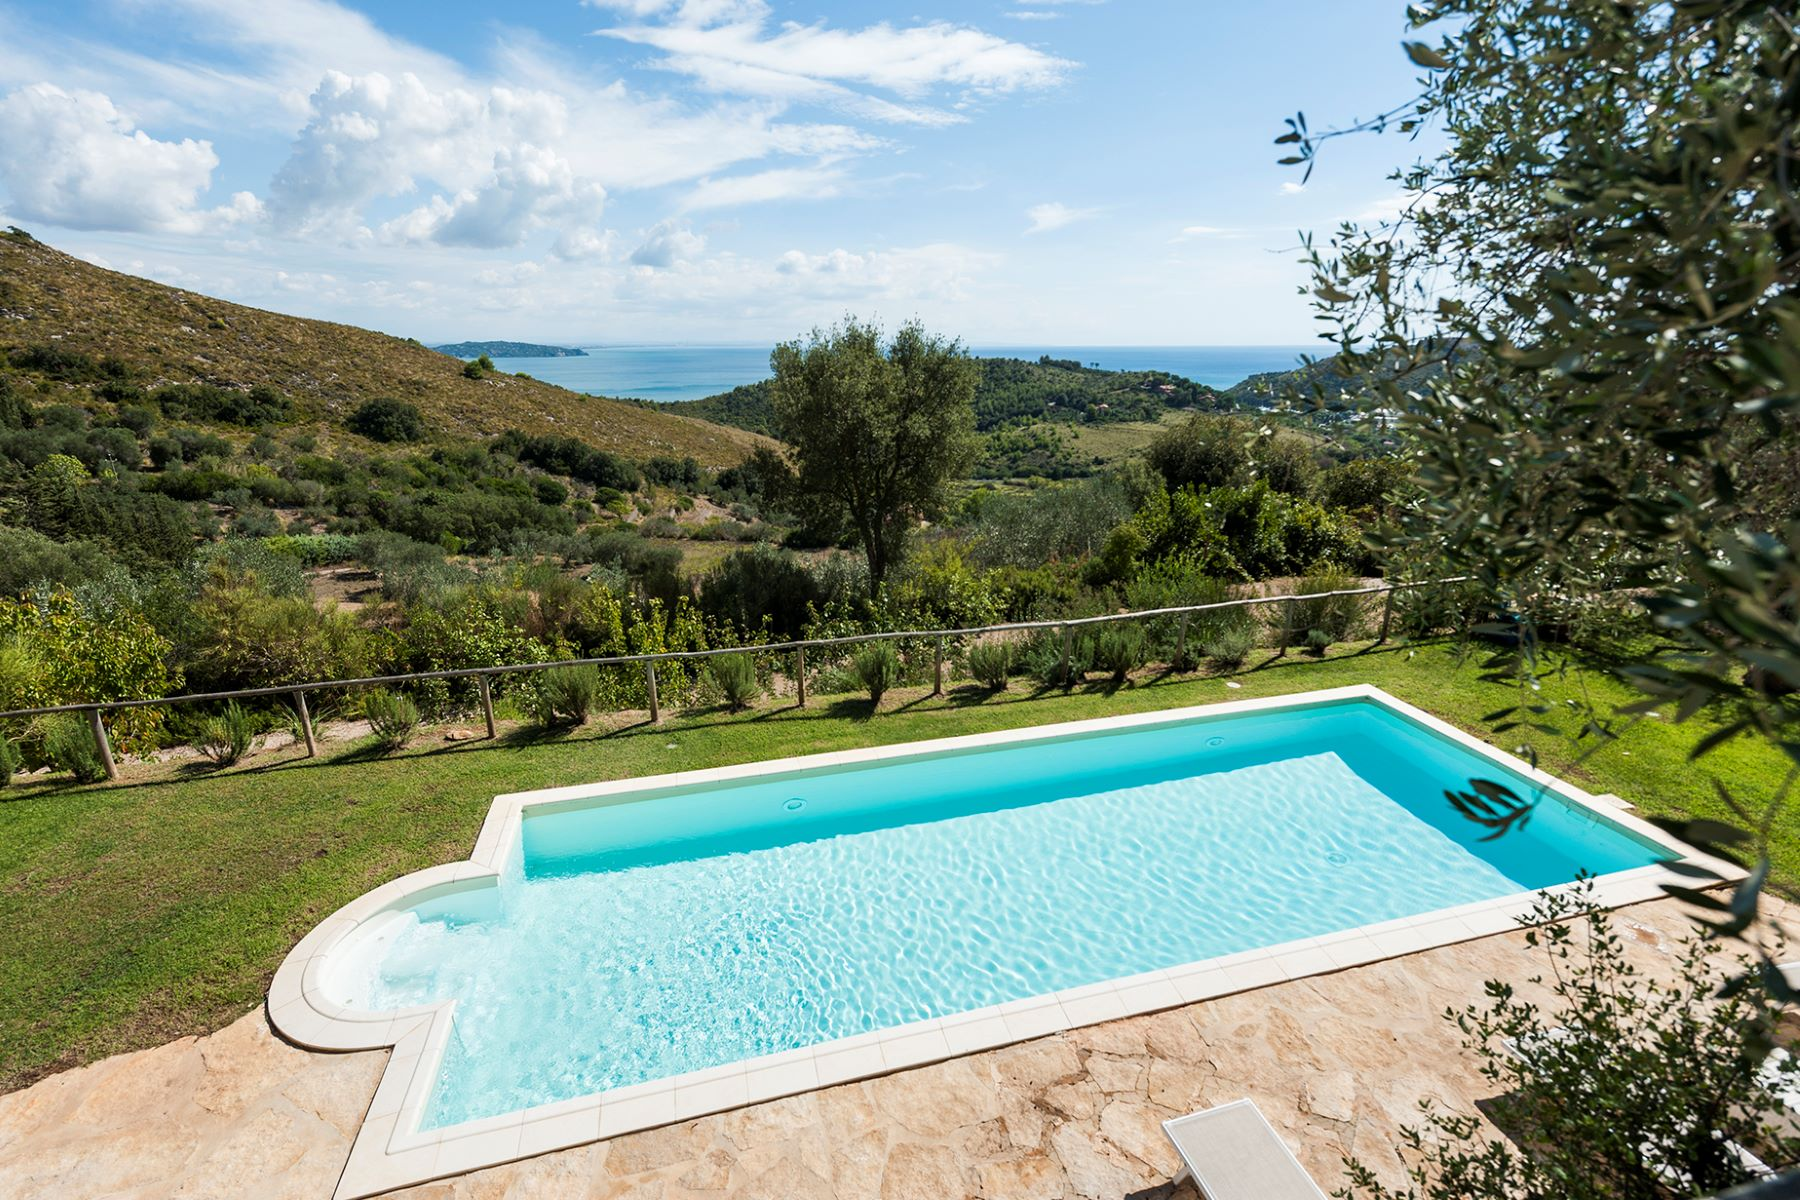 Additional photo for property listing at Wonderful stone villa in Monte Argentario Porto Ercole, Grosseto Italie